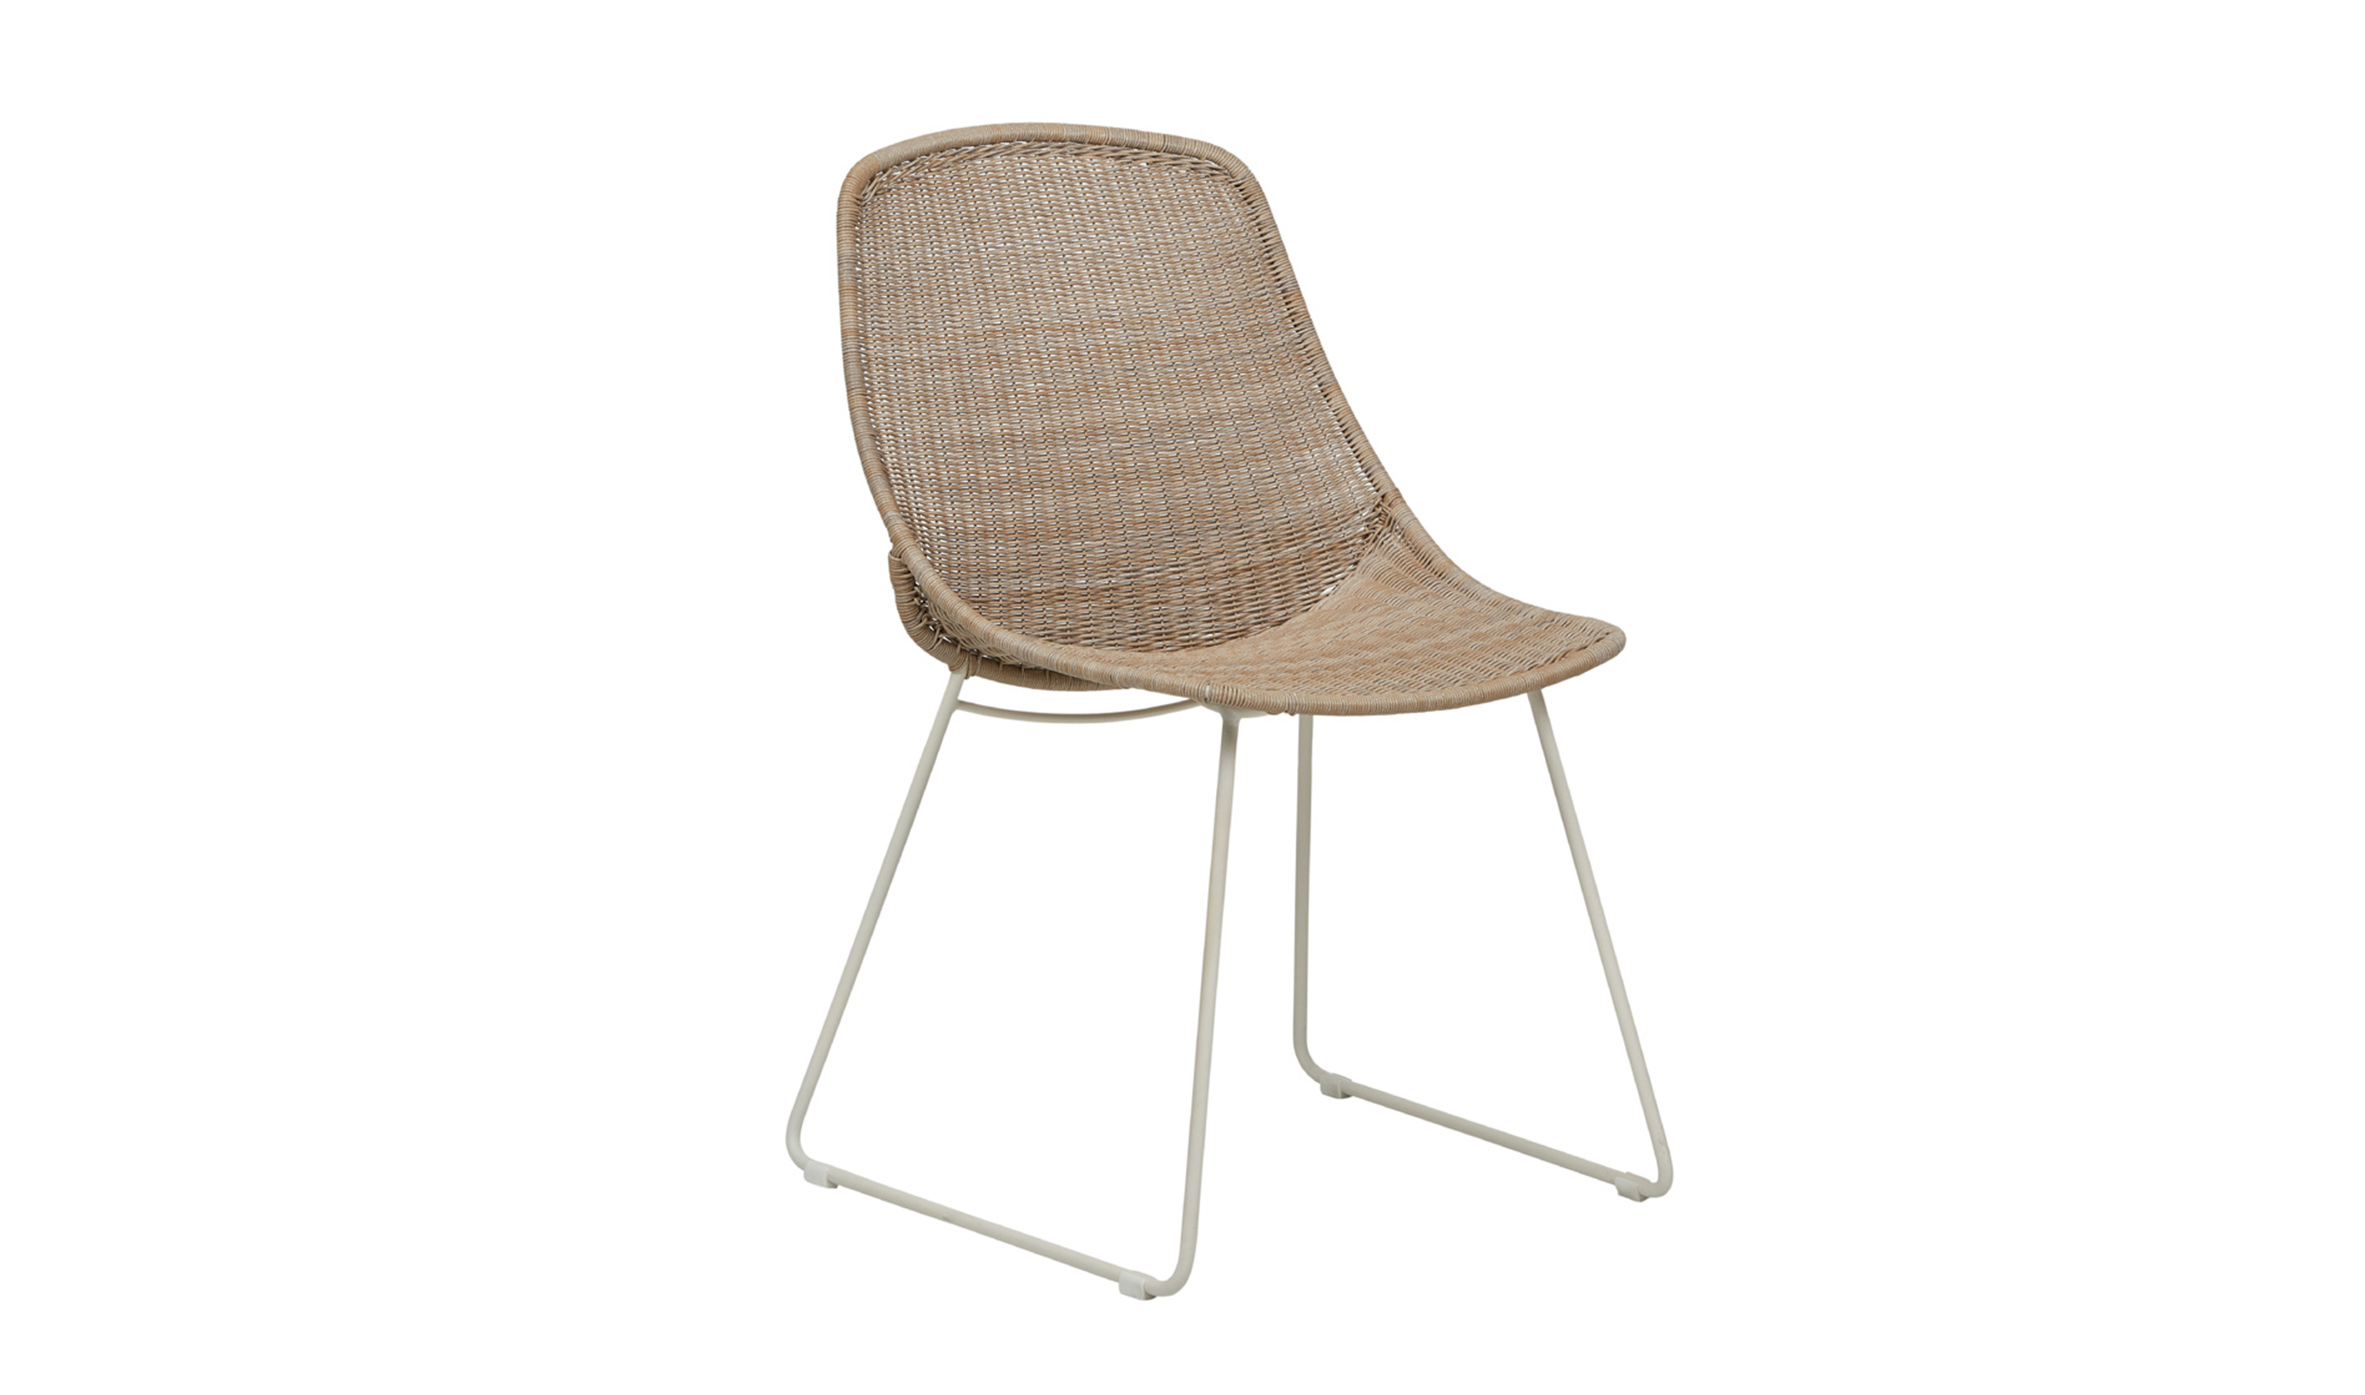 Furniture Thumbnails outdoor-dining-chairs-benches-and-stools-granada-scoop-cl-wv-100